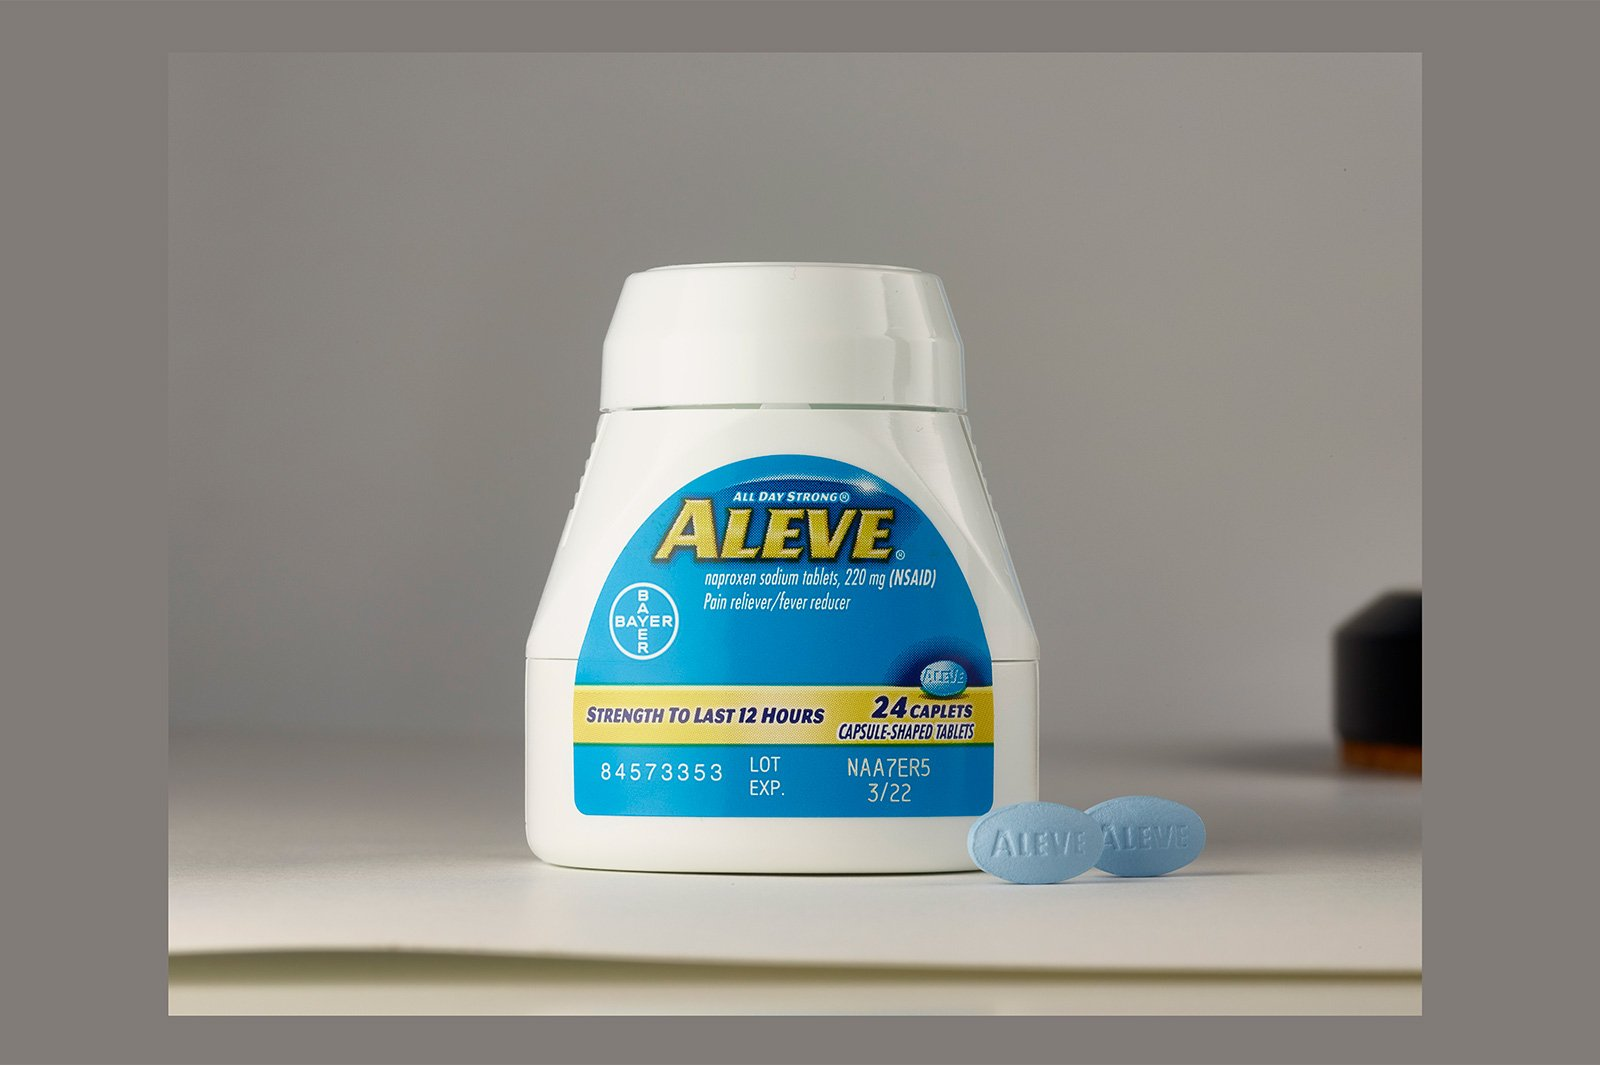 Aleve Bottle Product Before Photo Retouching